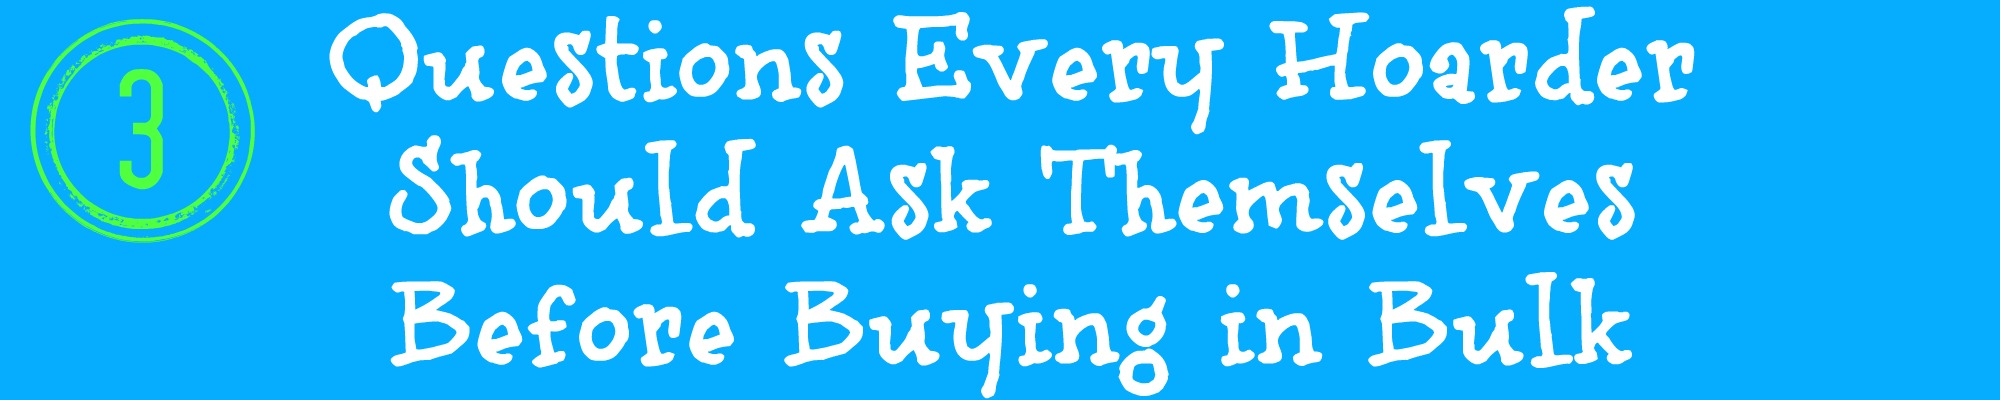 Questions every hoarder should ask themselves before buying in bulk at Homemaker's Challenge